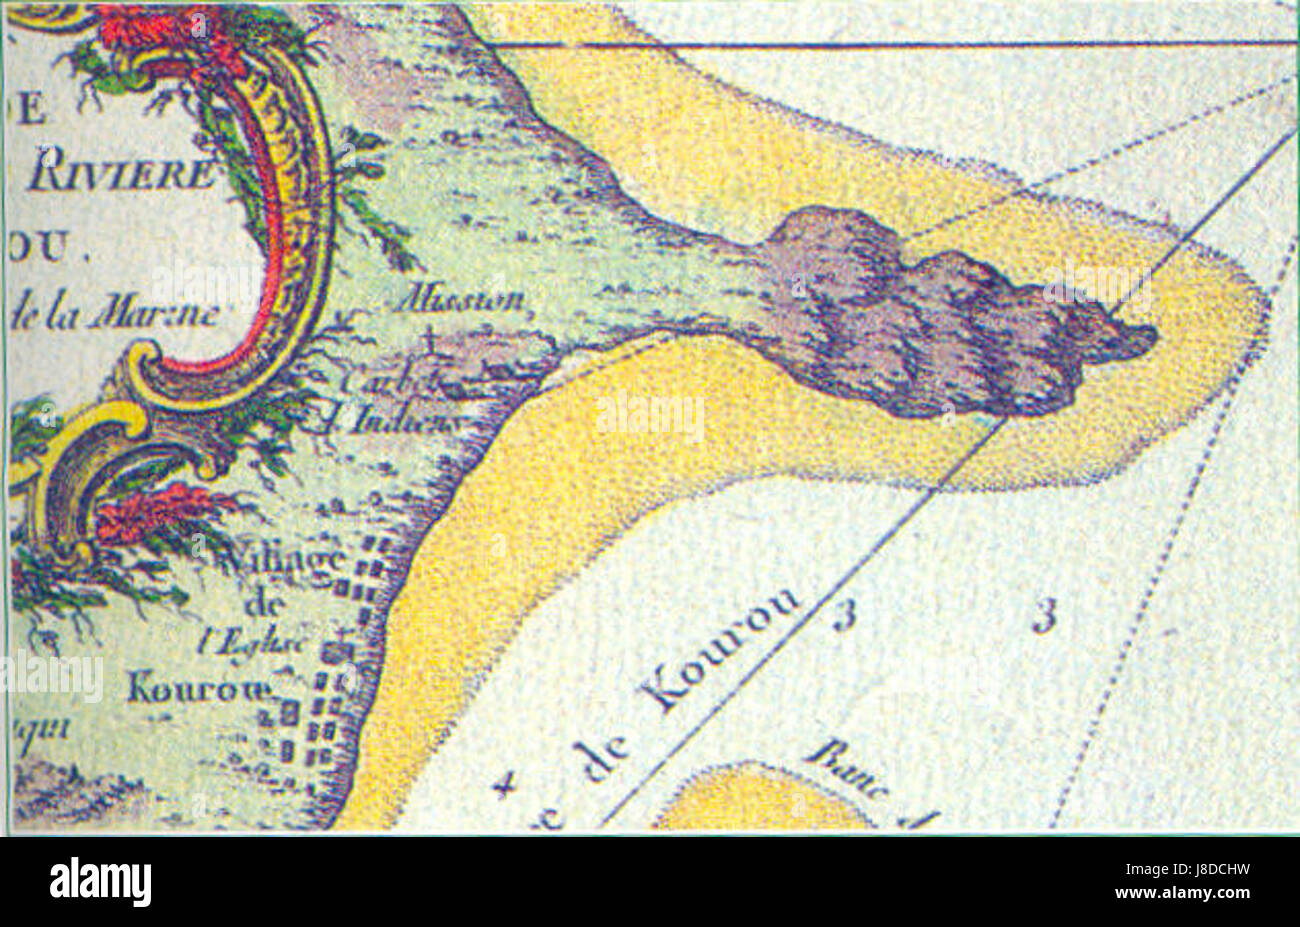 Kourou bellin carte map detail 1762 Stock Photo Royalty Free Image